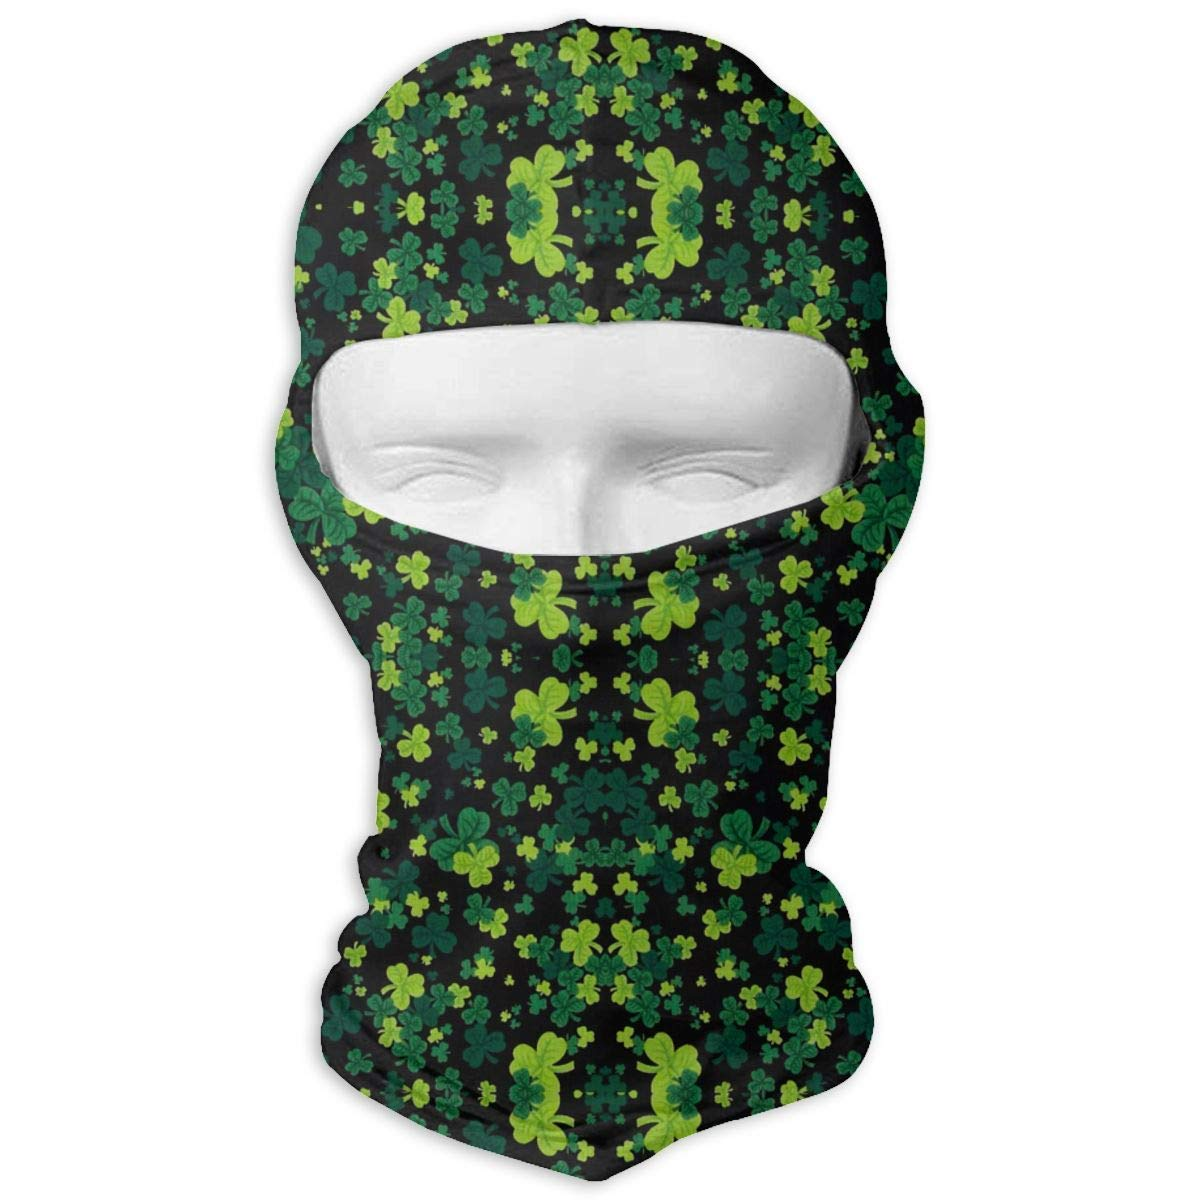 Xukmefat St Patrick\'s Party Shamrock Balaclava UV Protection Windproof Ski Face Masks for Cycling Outdoor Sports Full Face Mask Breathable